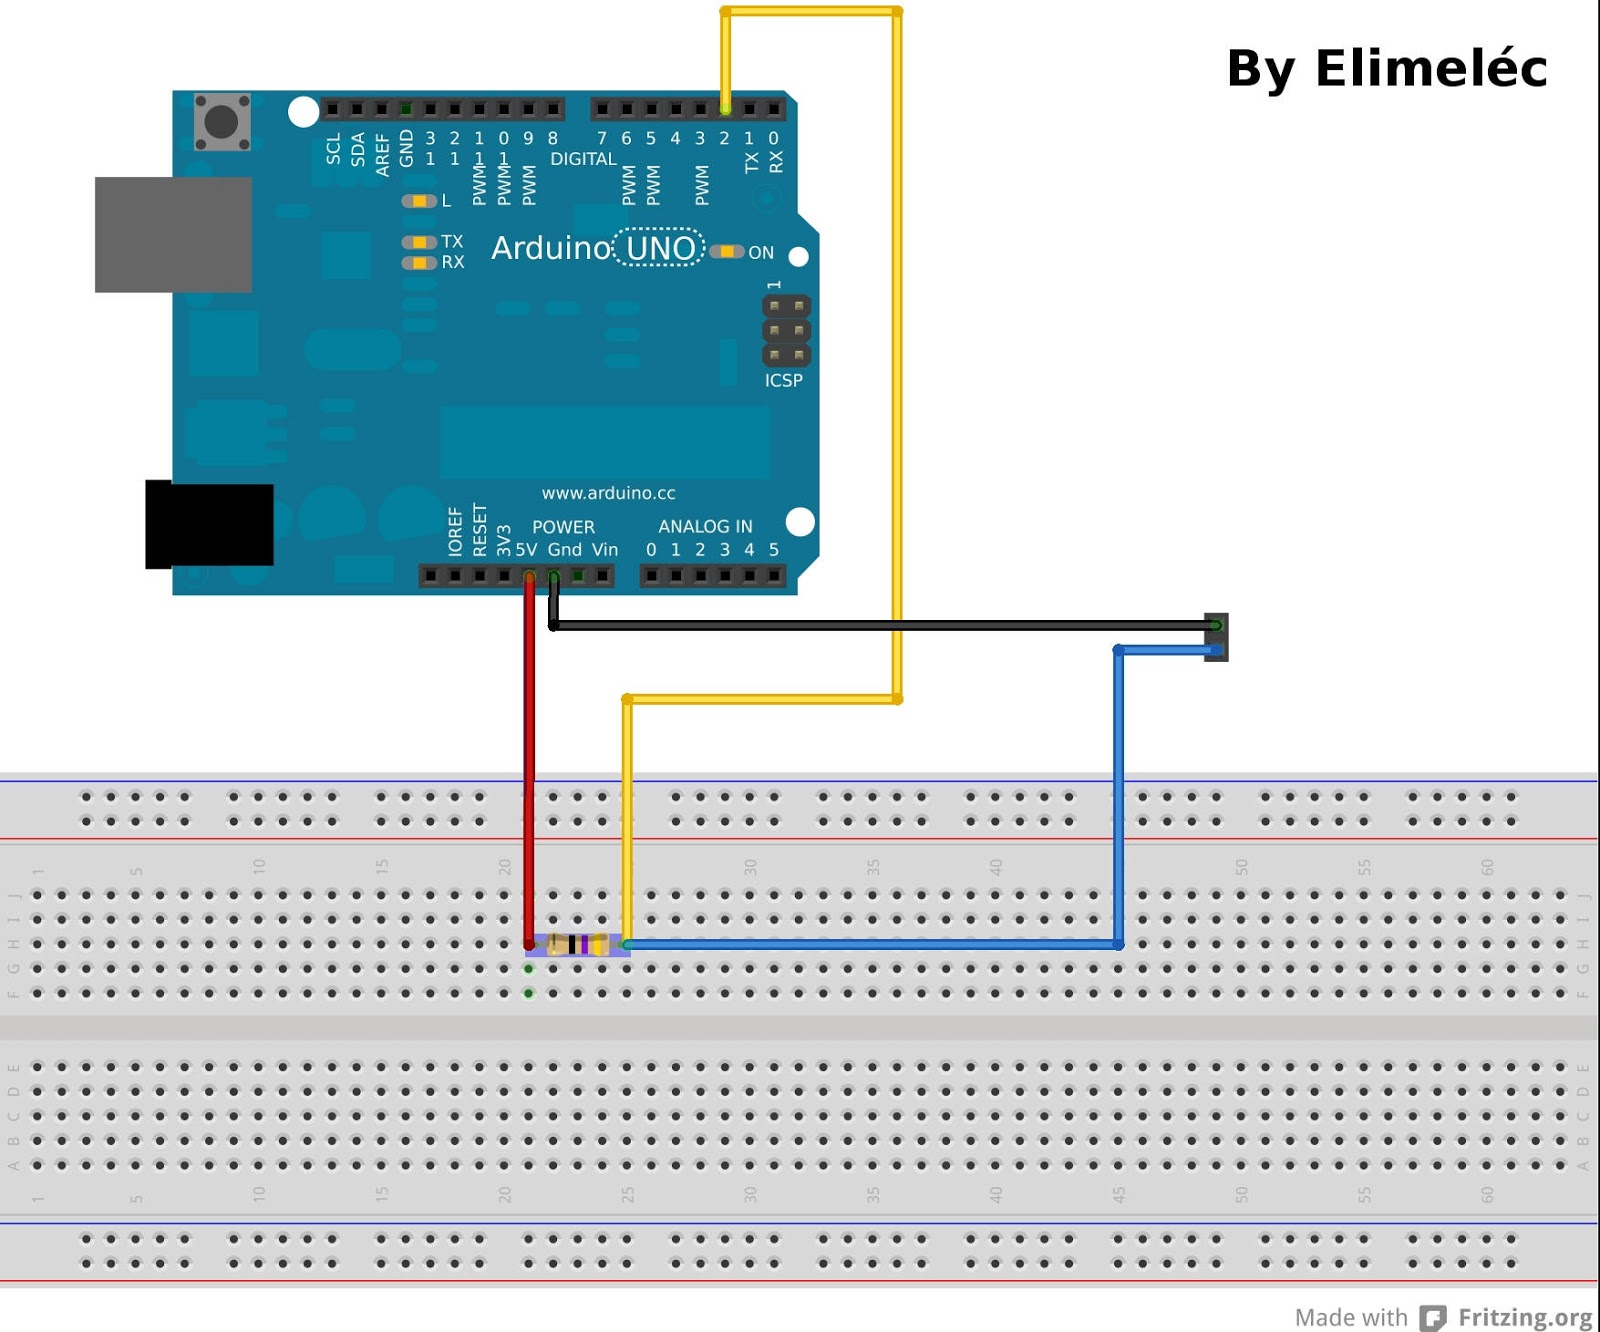 Elimeléc\'s Arduino Projects: Read Dallas iButton Arduino